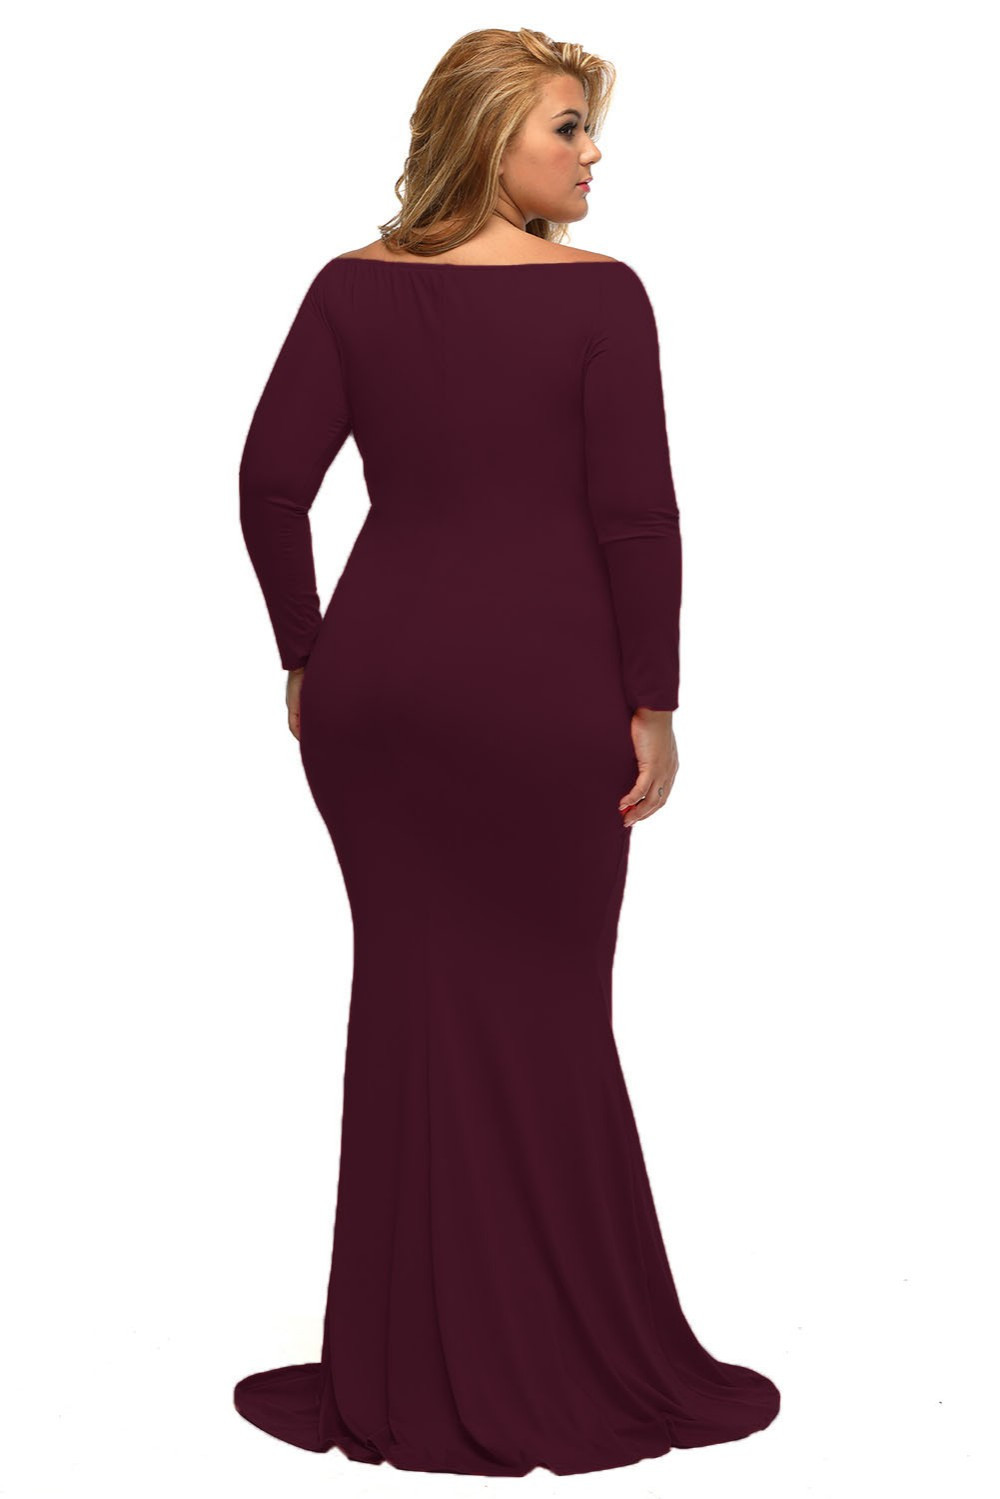 Plus Sized Maxi dresses with V neck at Bling Brides Bouquet - Online Bridal  image 7